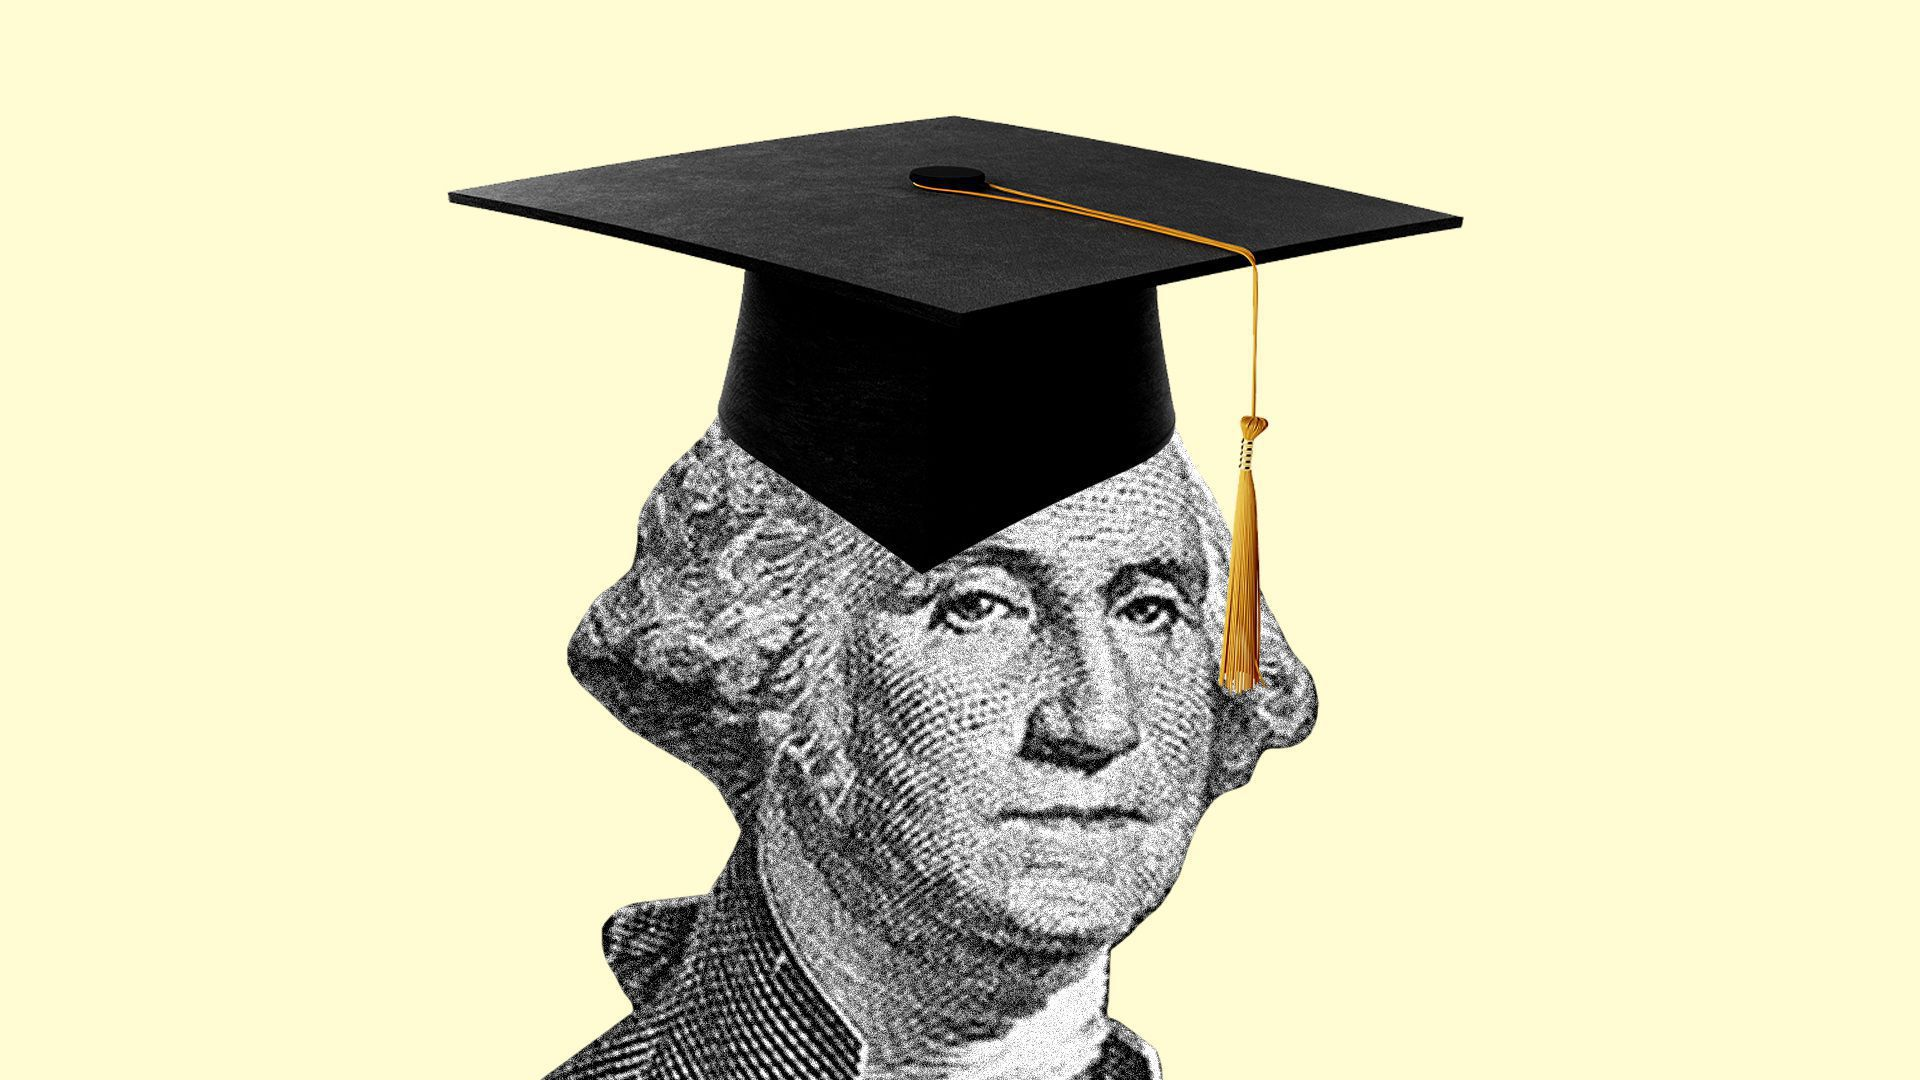 In this illustration, a drawing of George Washington wears a graduation cap against a pale yellow background.